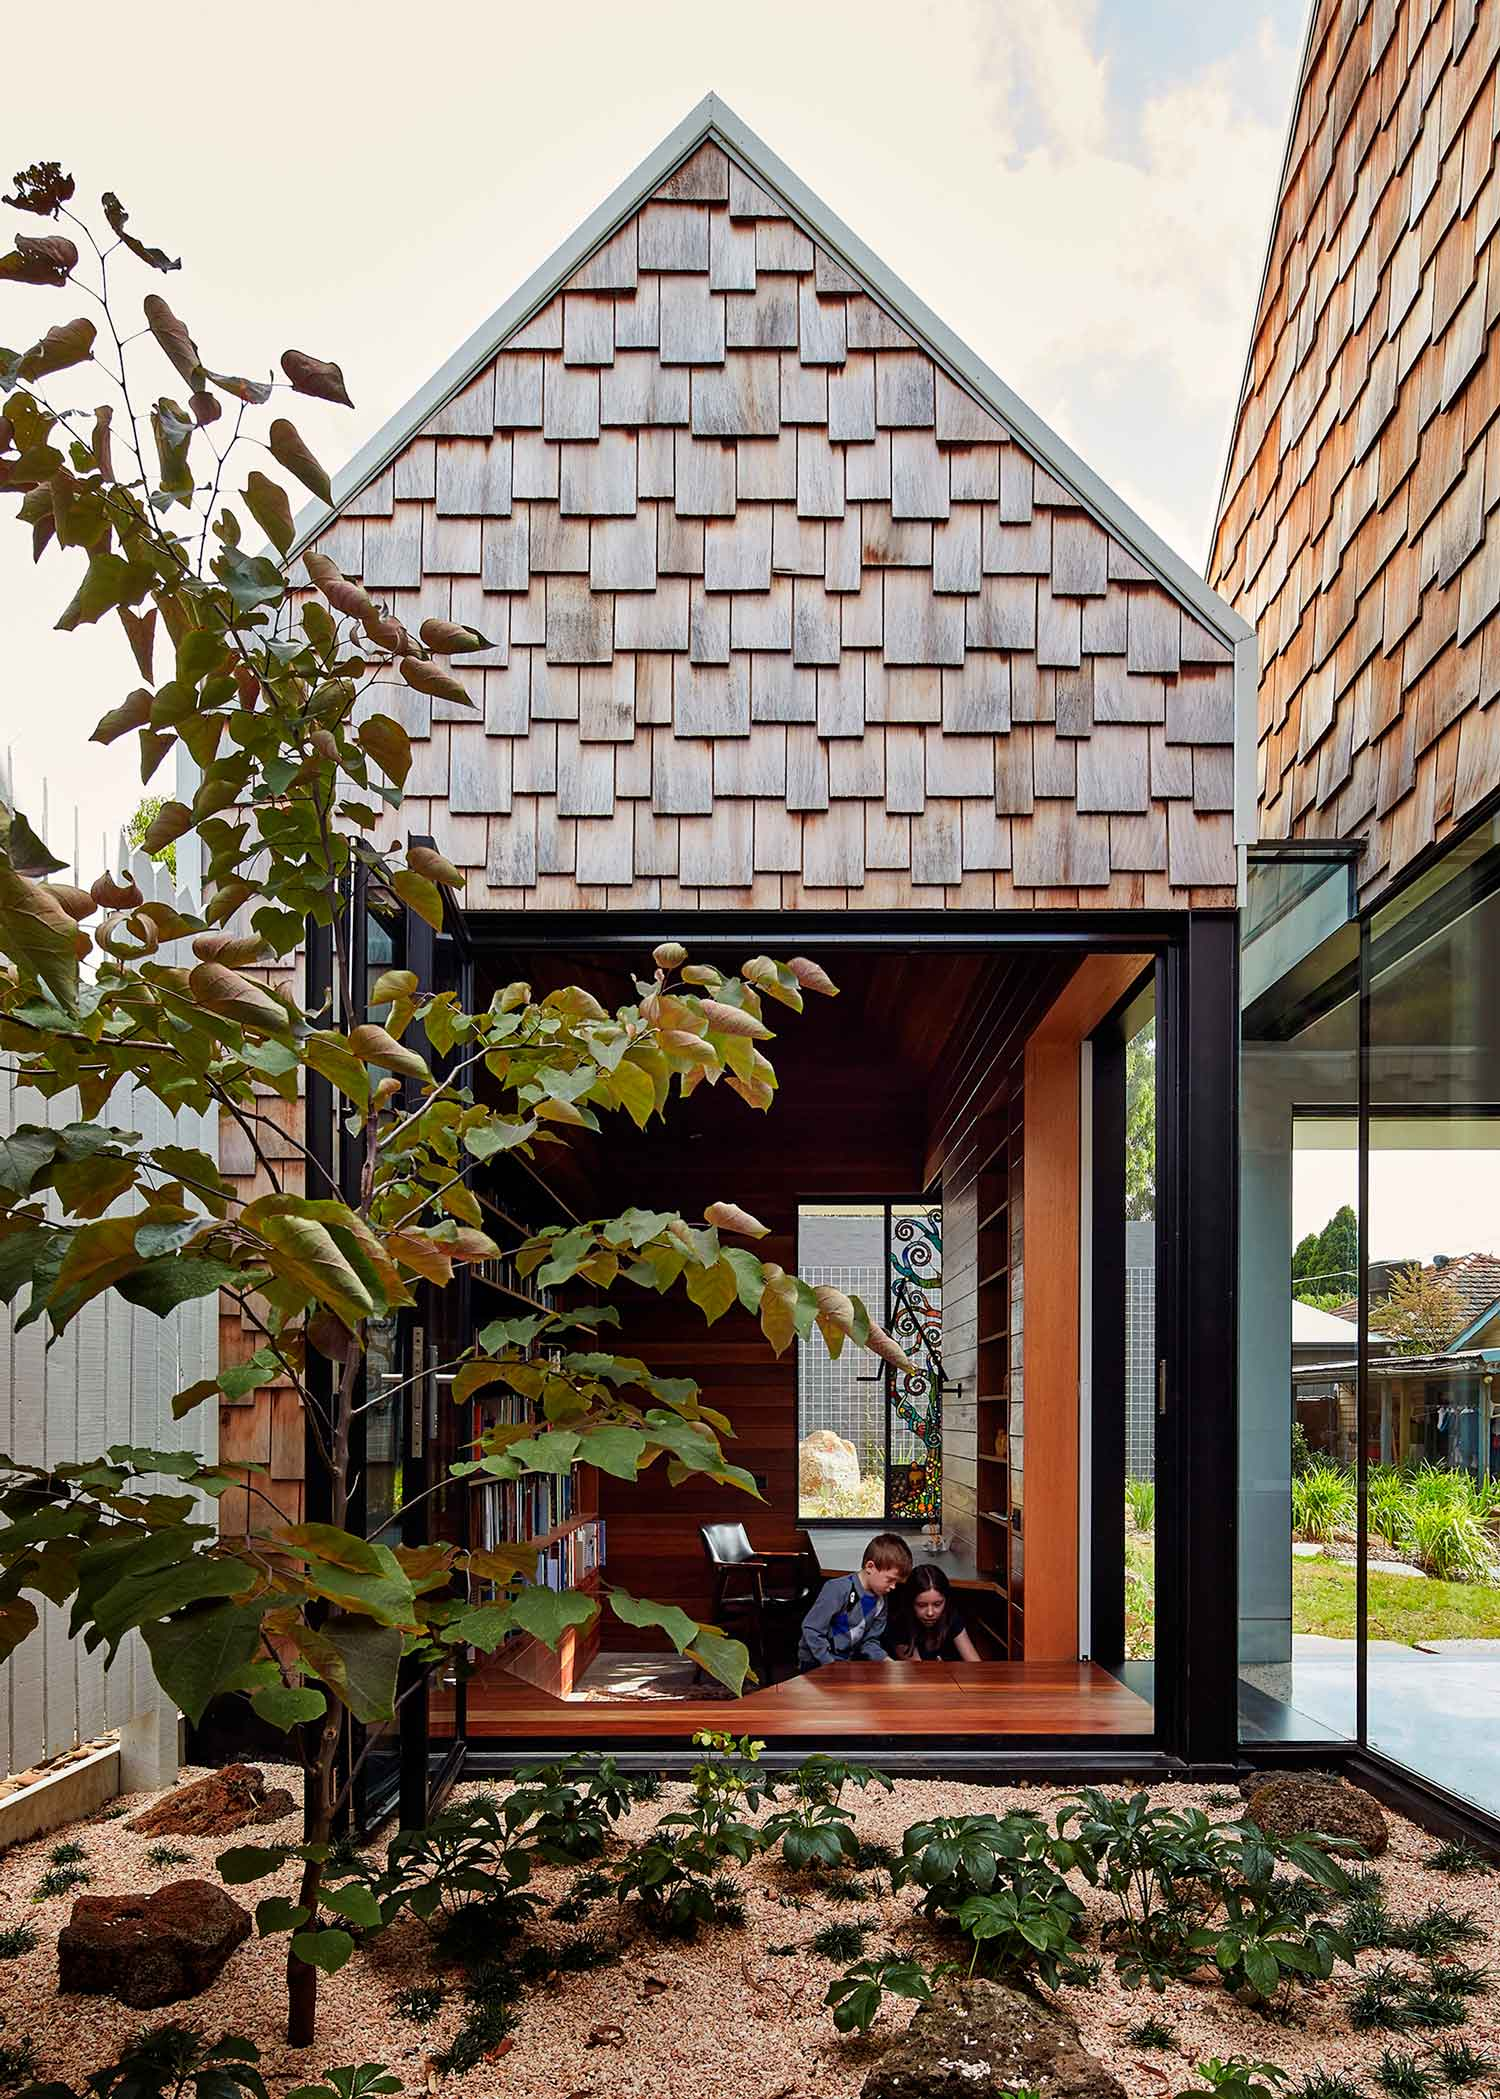 Tower House by Andrew Maynard Architects. Photo by Peter Bennetts | Yellowtrace